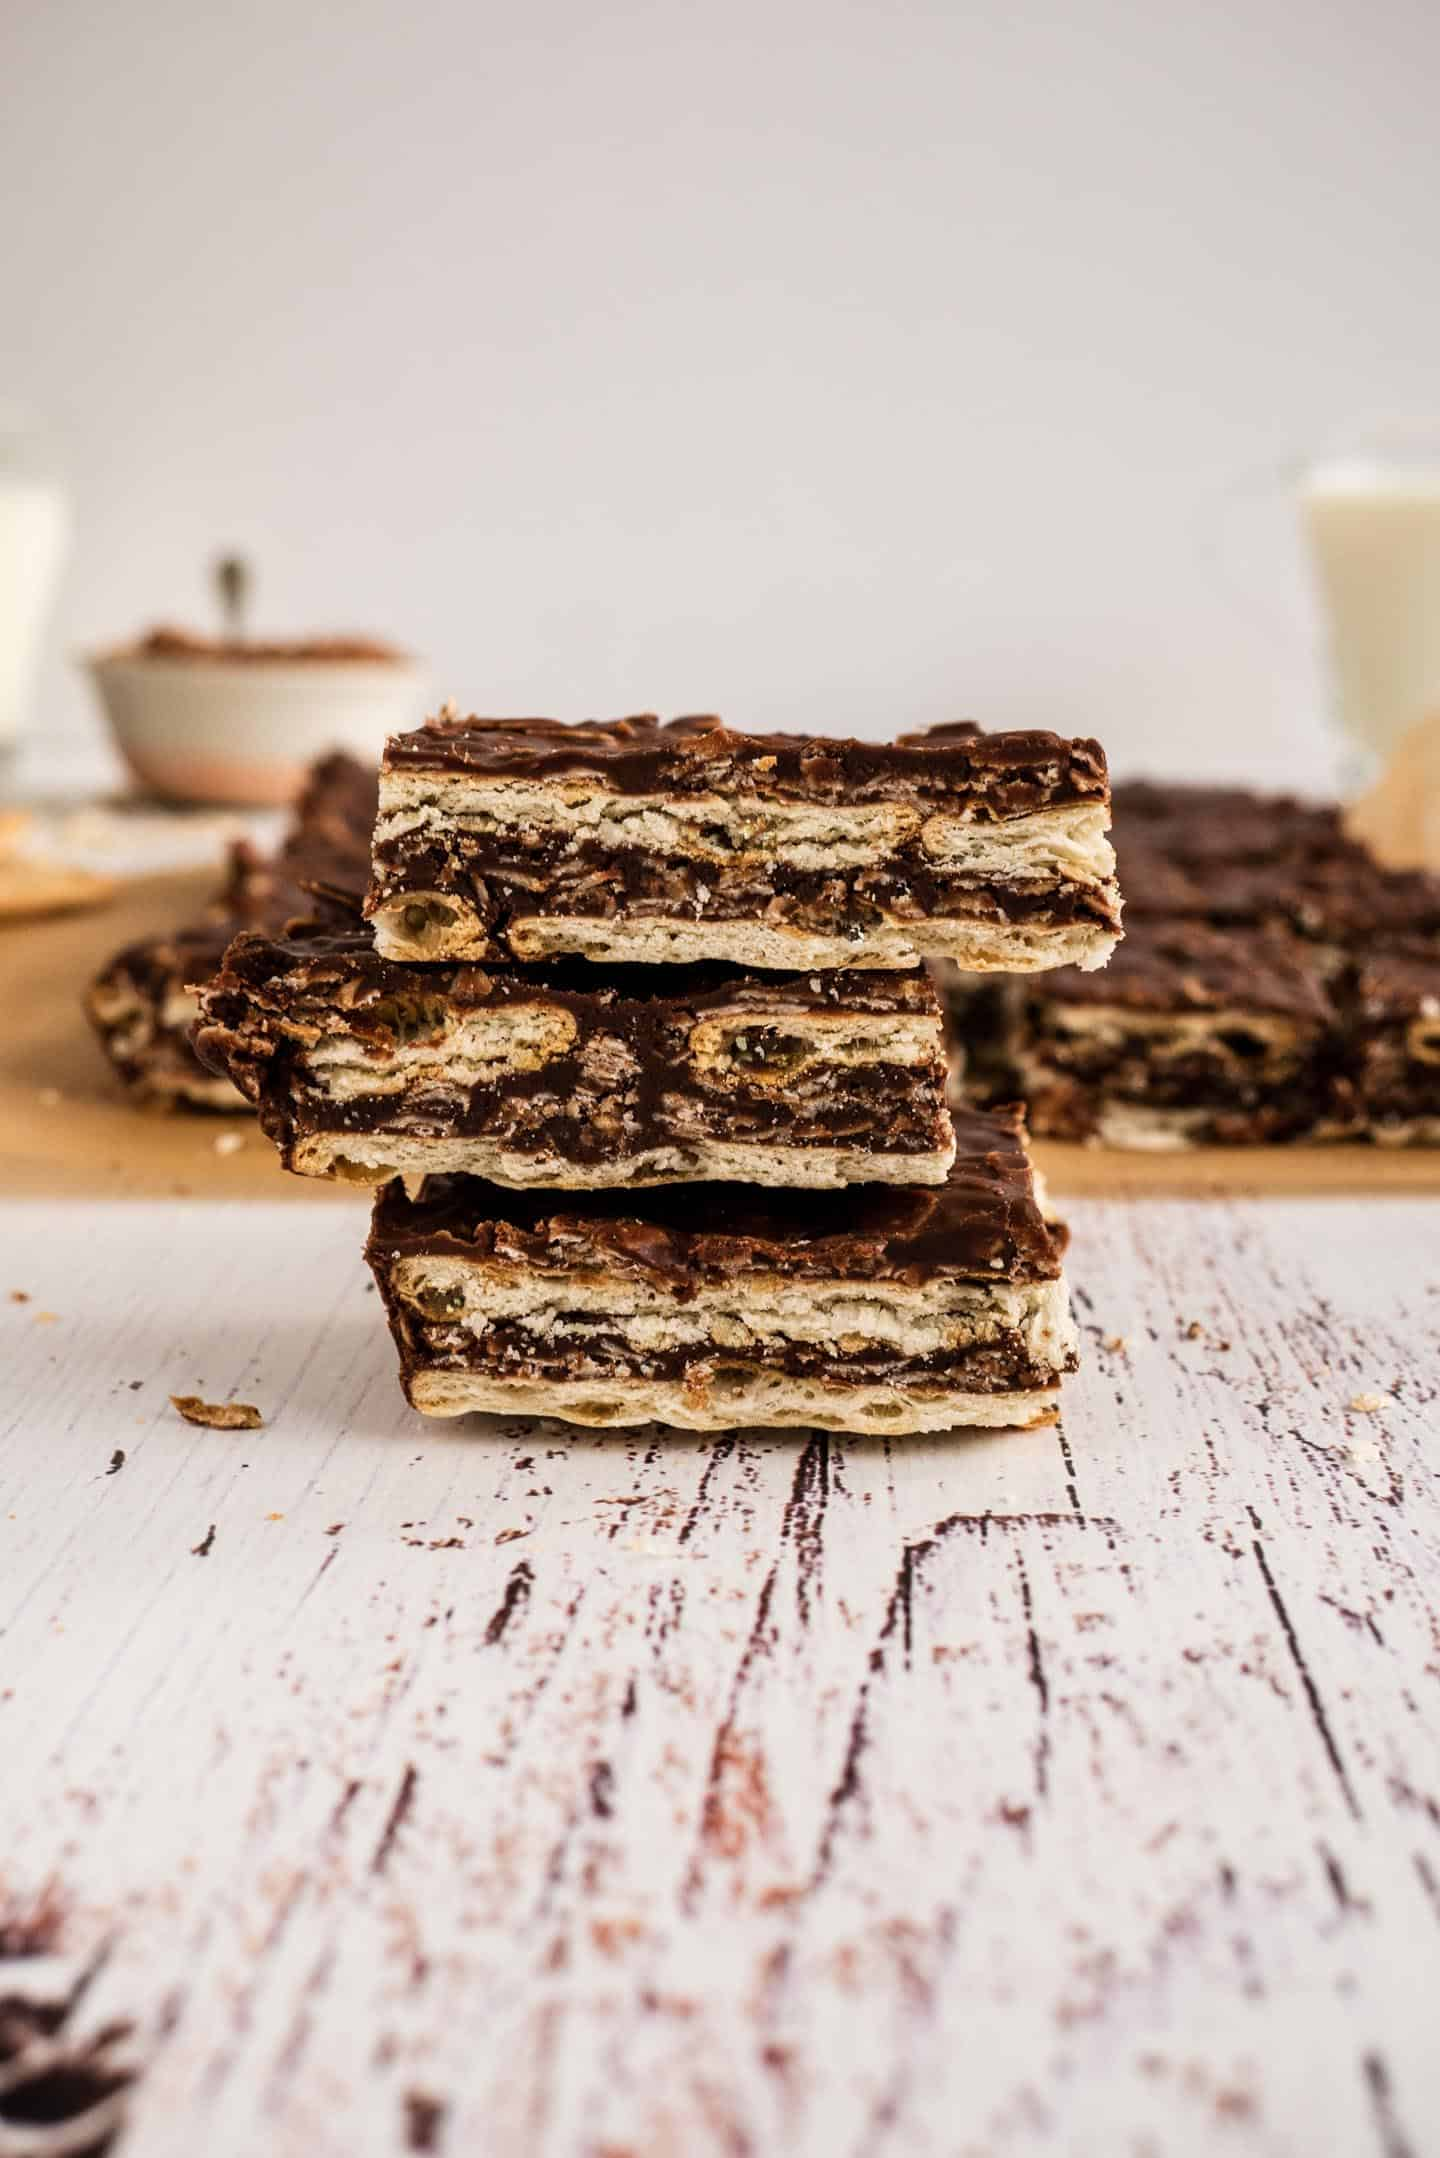 Melted chocolate and oats in layers of crackers, an absolute classic of many Argentinians' childhood.